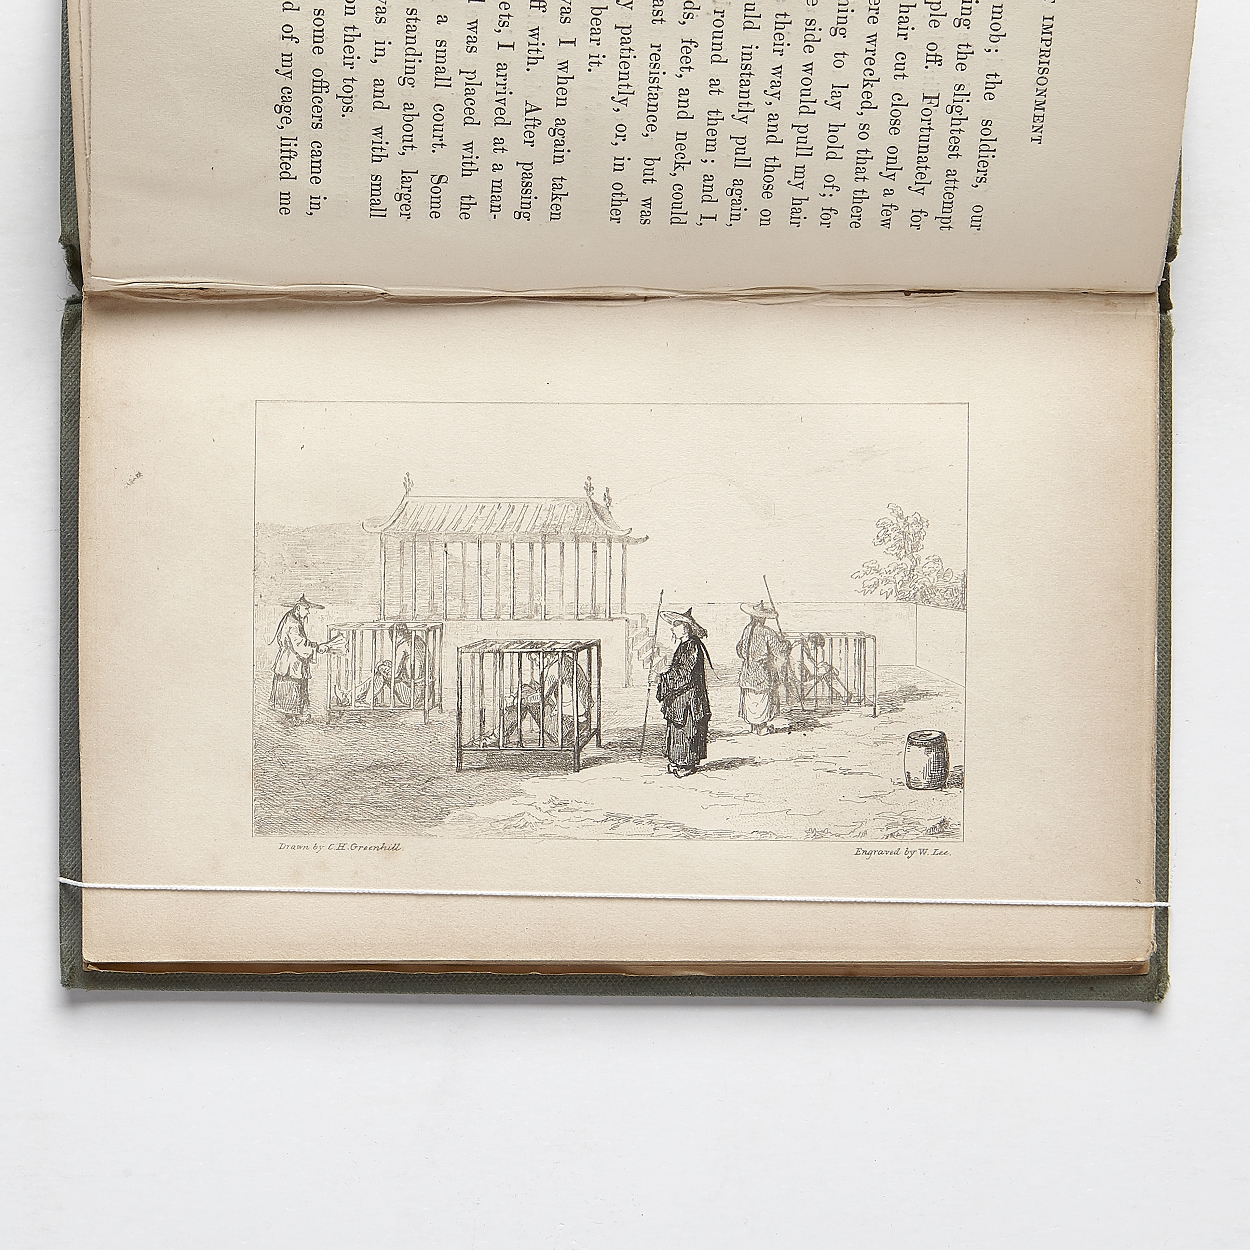 Scott's imprisonment in China 1841